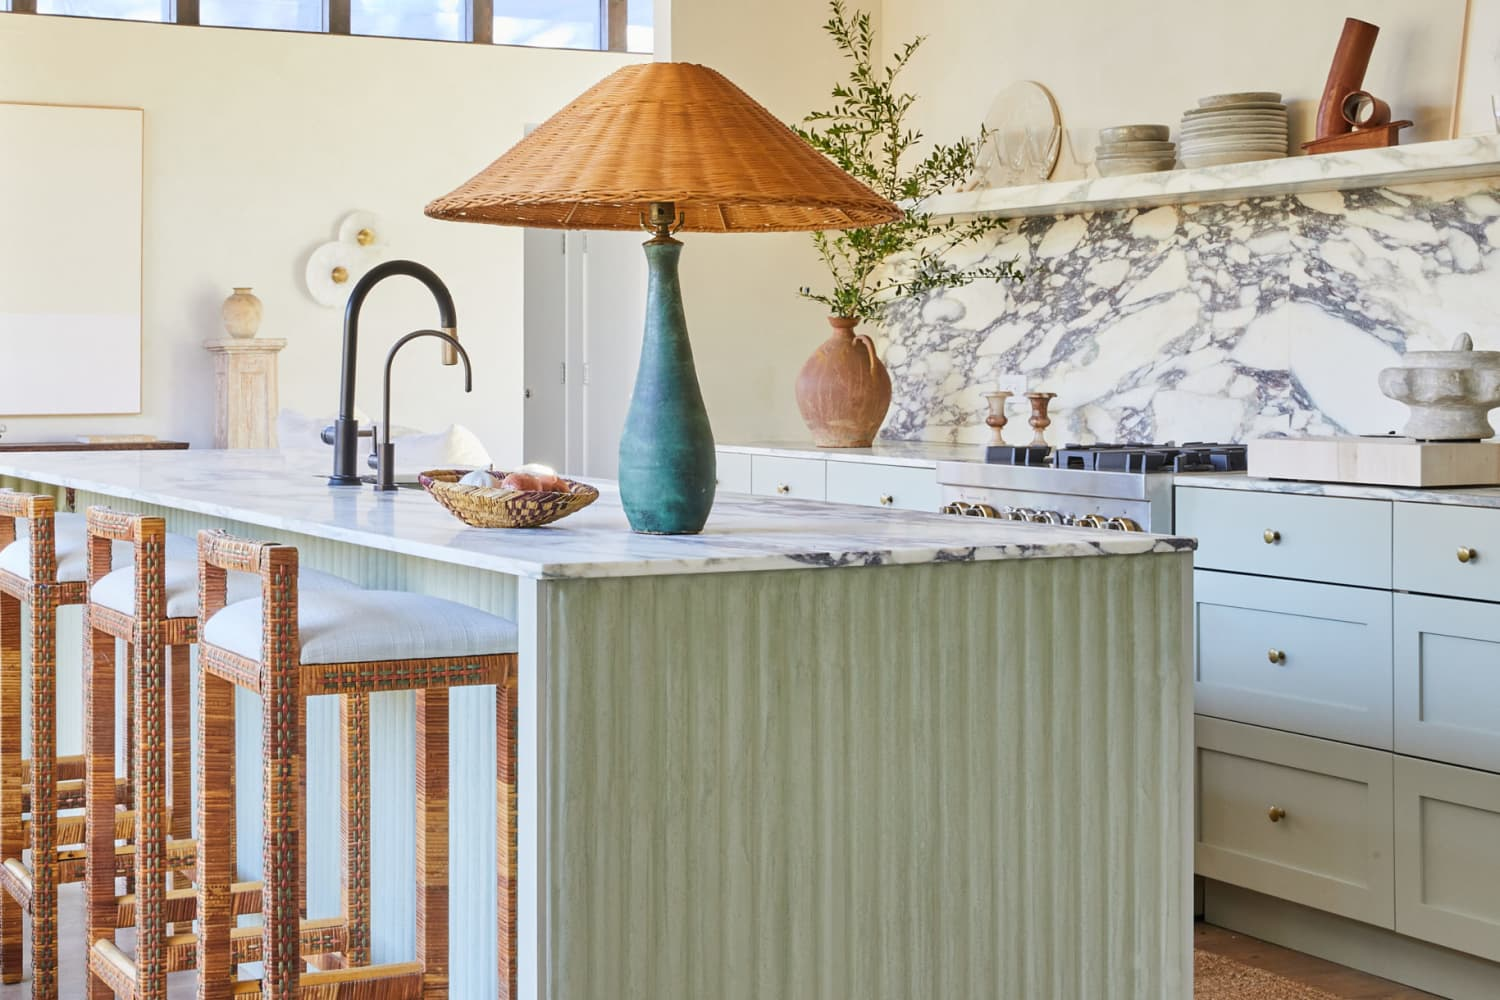 This Backsplash Has Officially Replaced Subway Tile, and I'm Not Mad at It